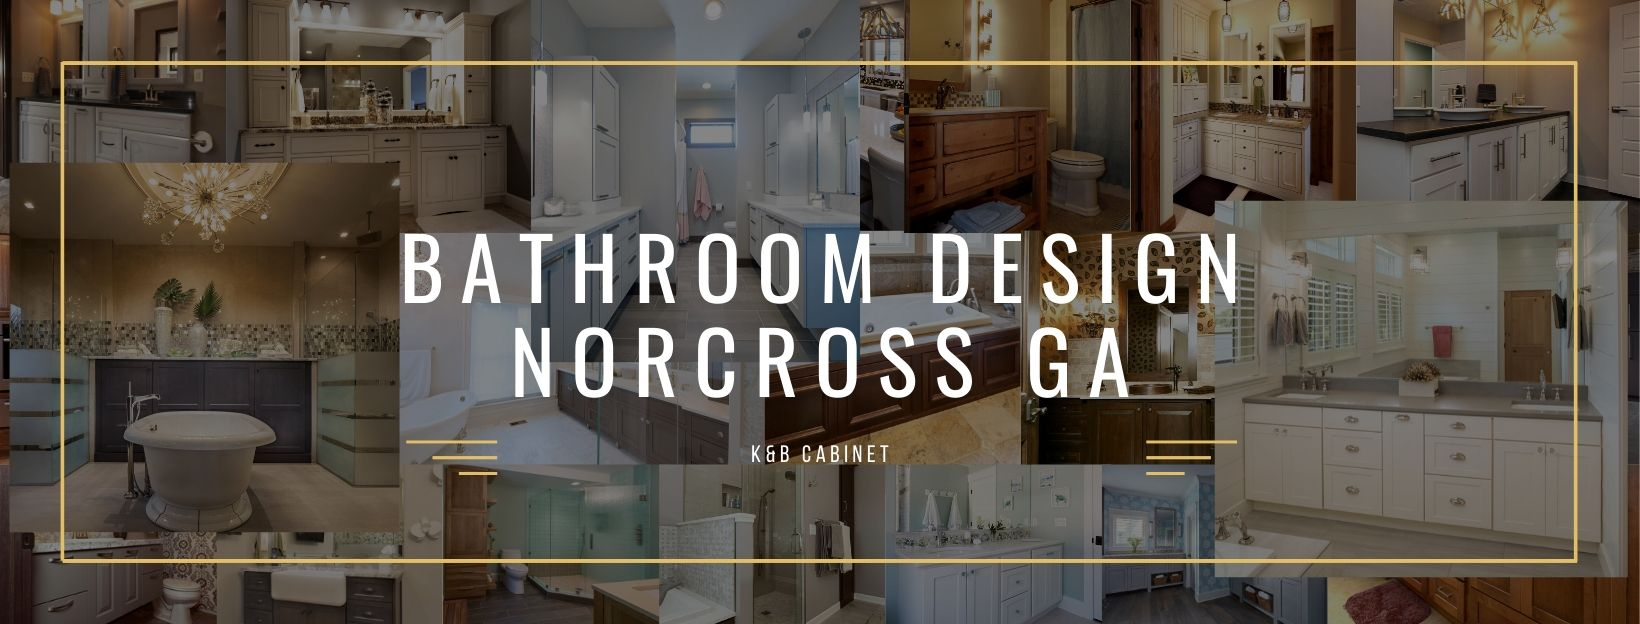 Bathroom Design Norcross GA